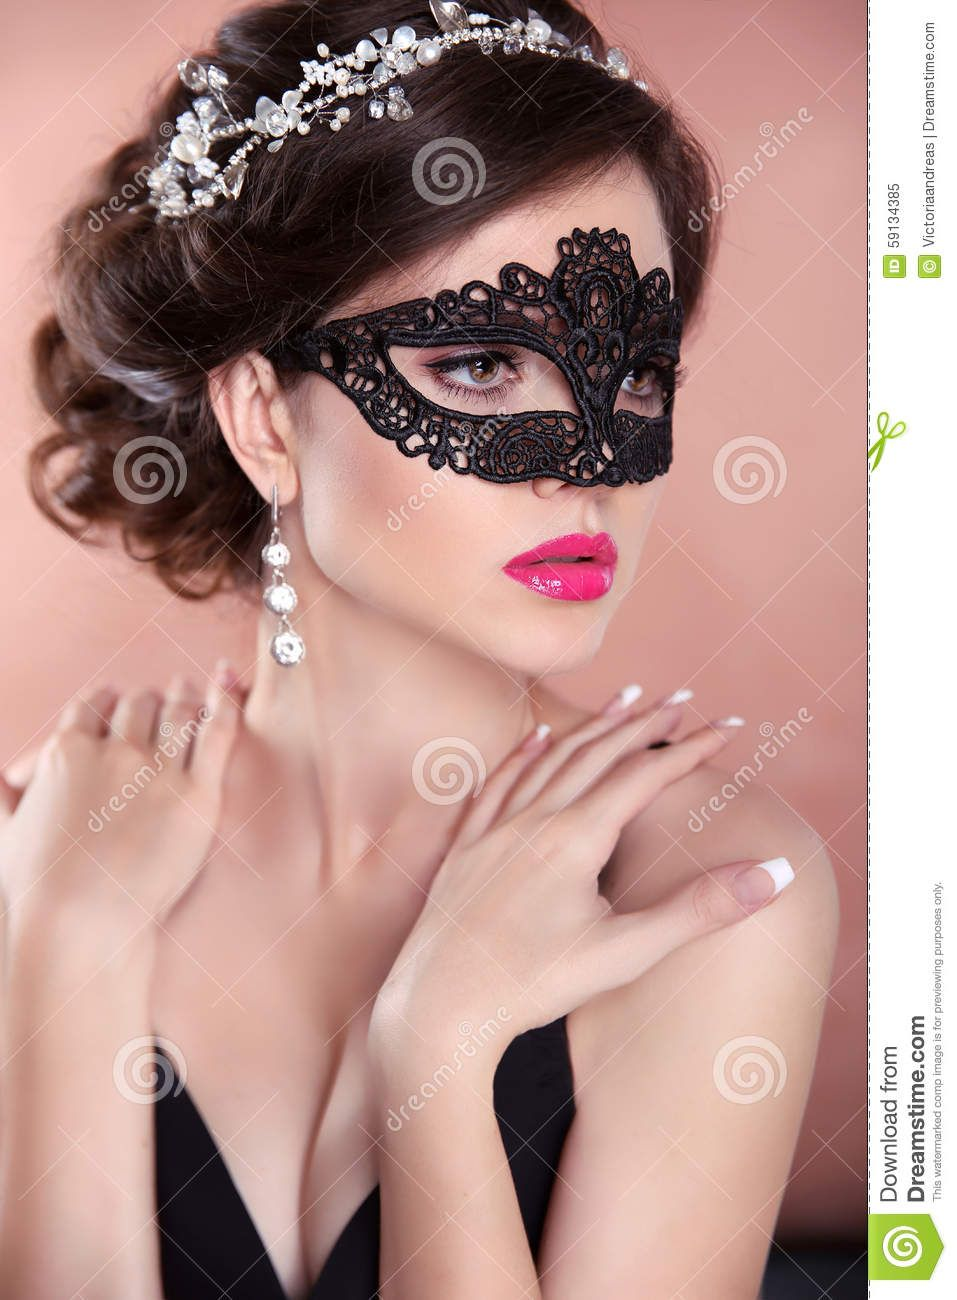 burlesque masquerade hairstyles - Google Search | Hair and Fashion ...